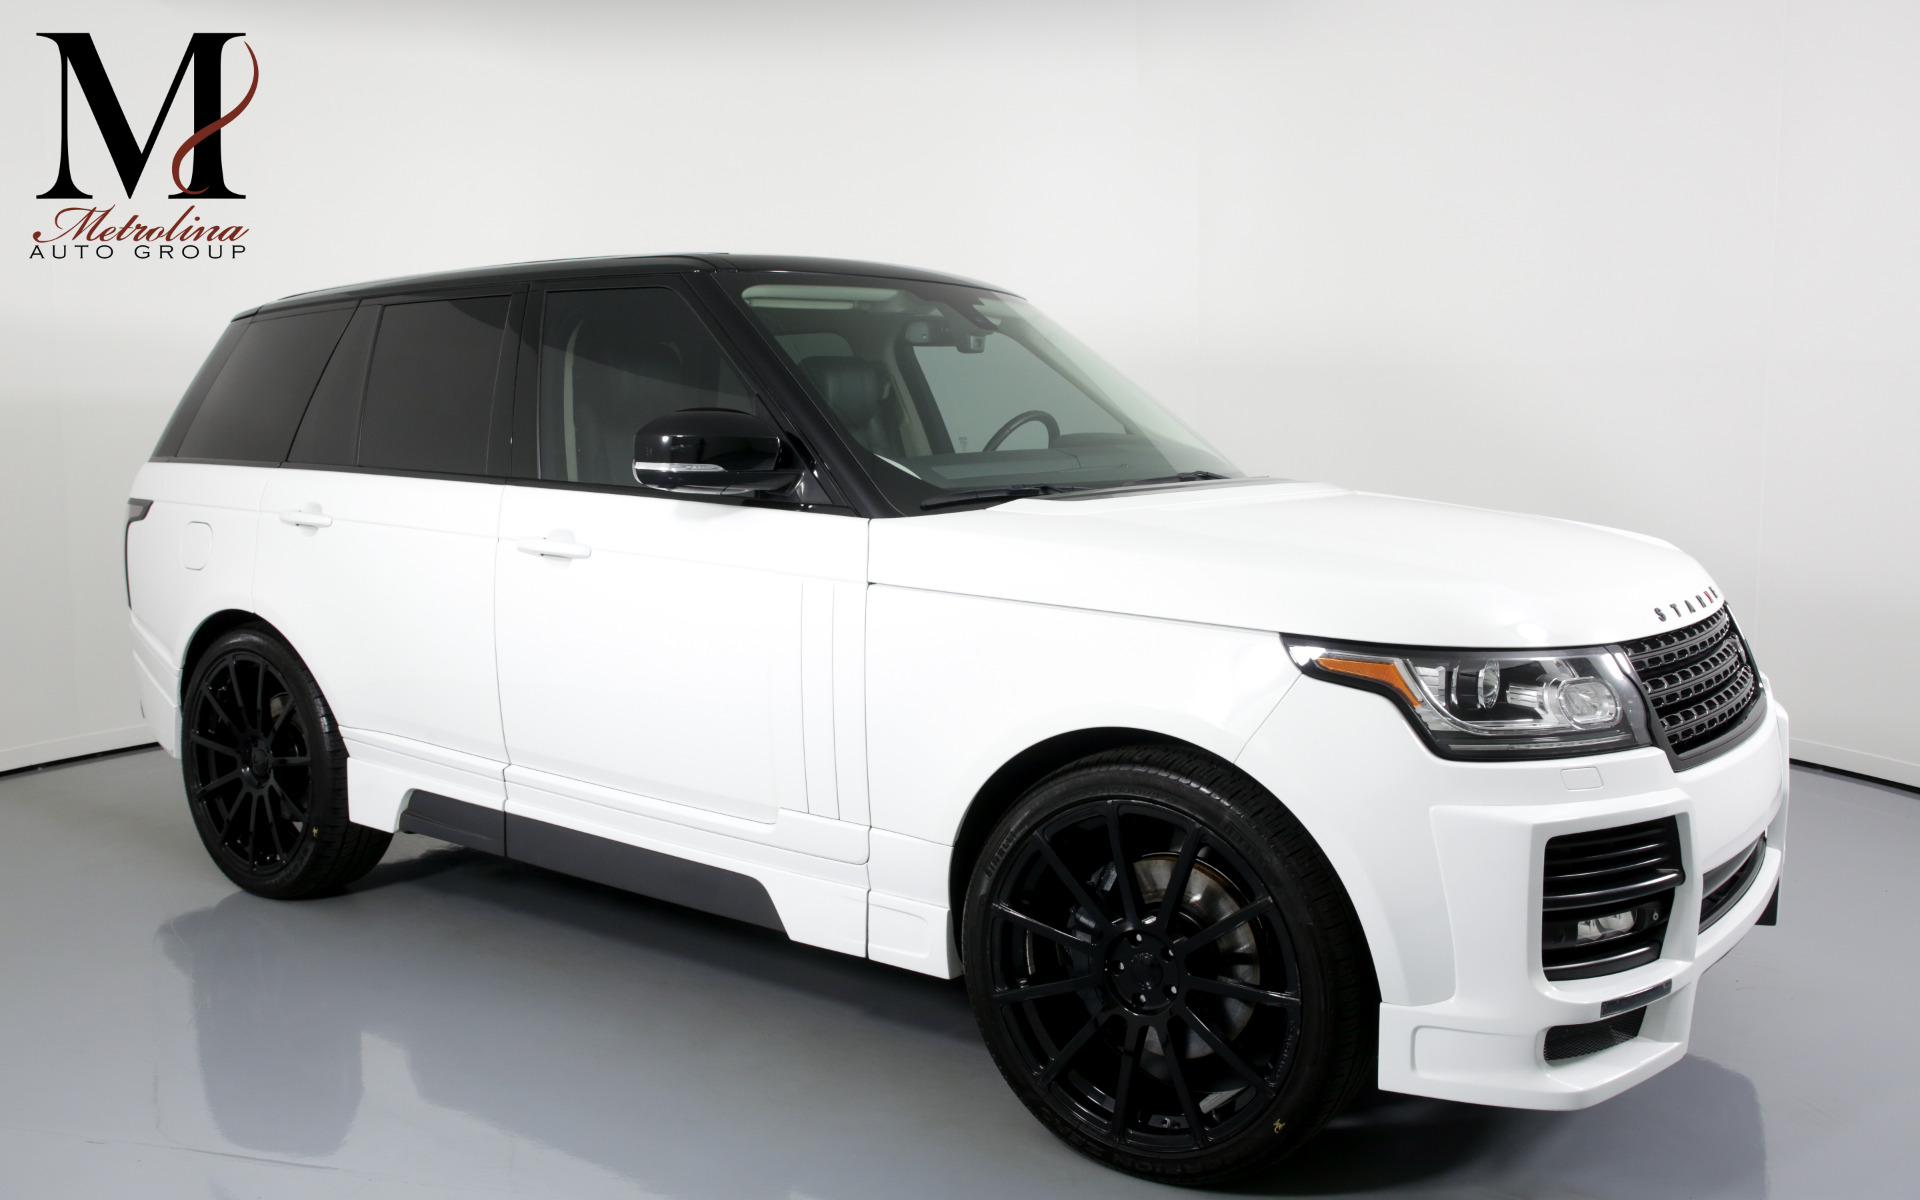 Used 2013 Land Rover Range Rover HSE for sale $69,996 at Metrolina Auto Group in Charlotte NC 28217 - 1